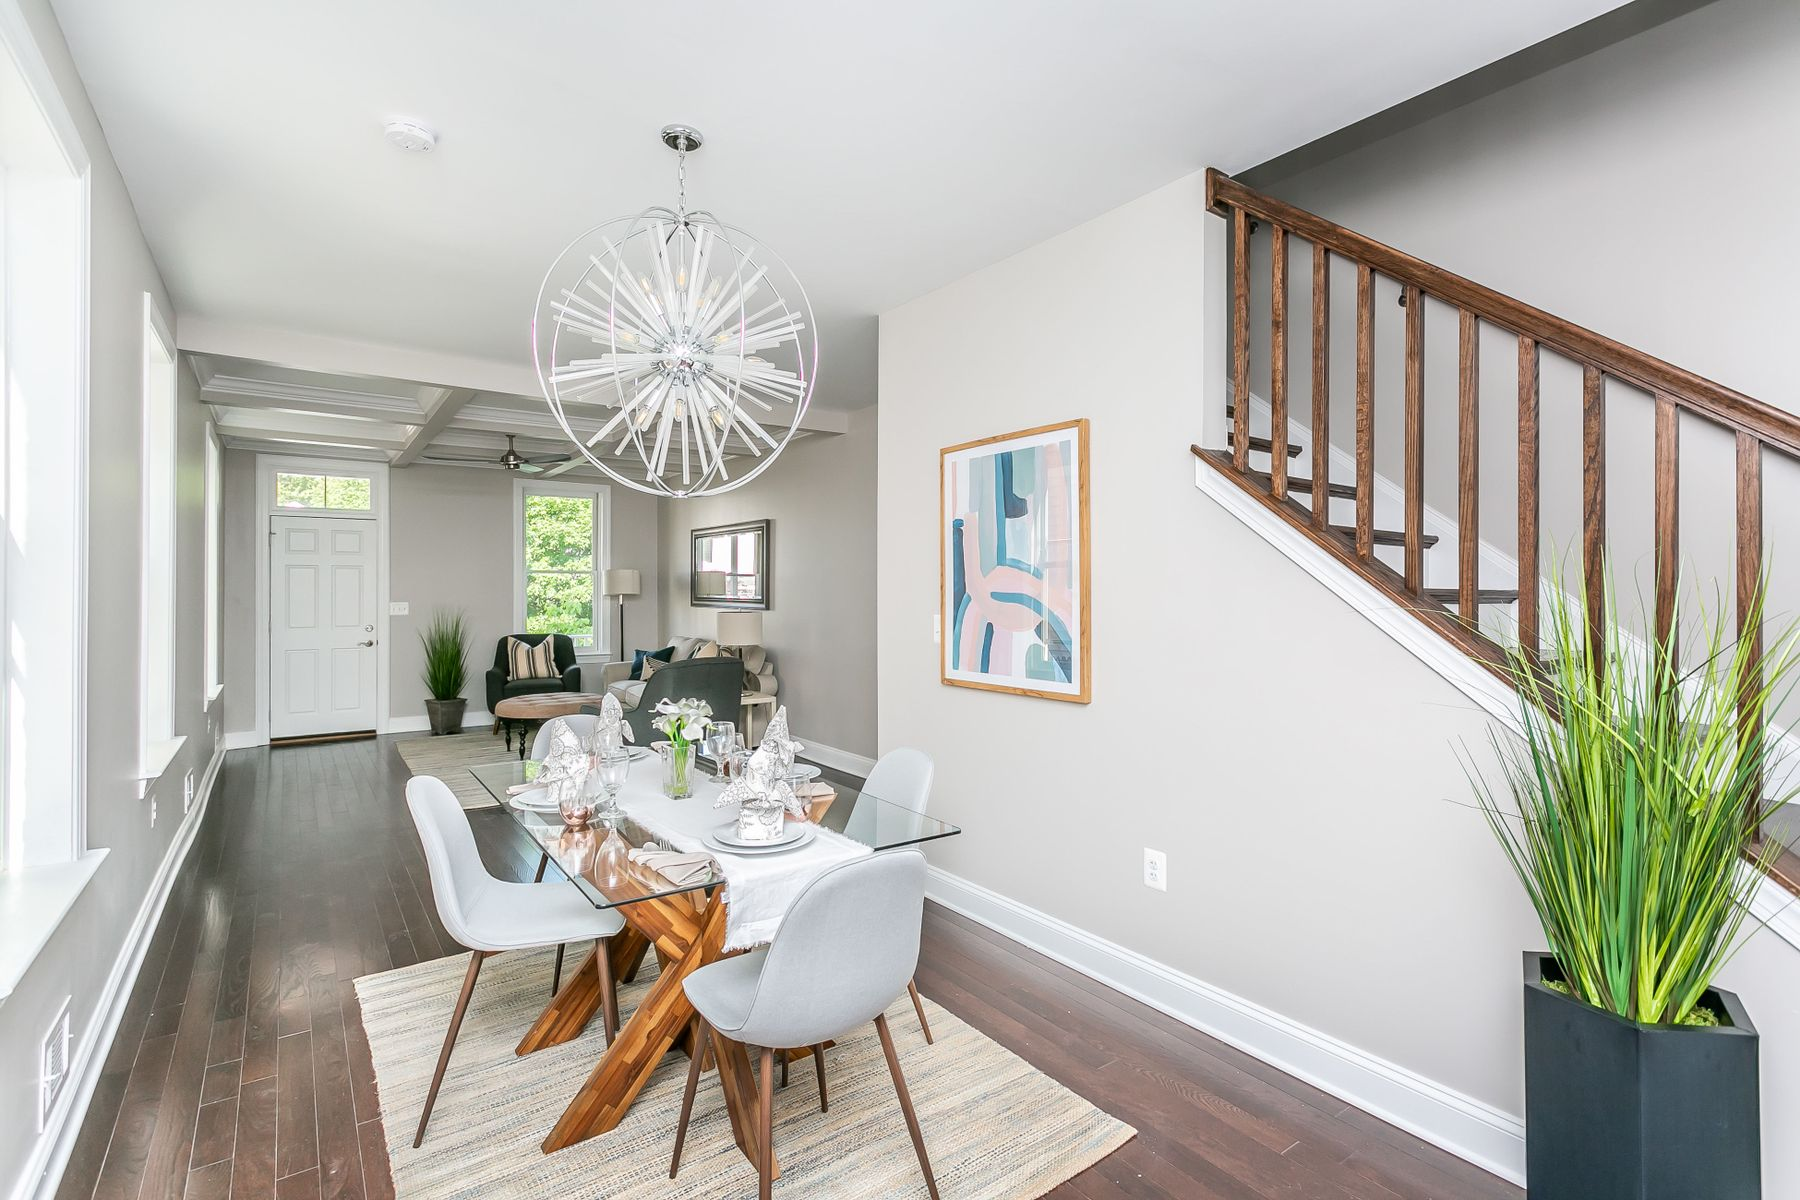 Stairs and dining room set